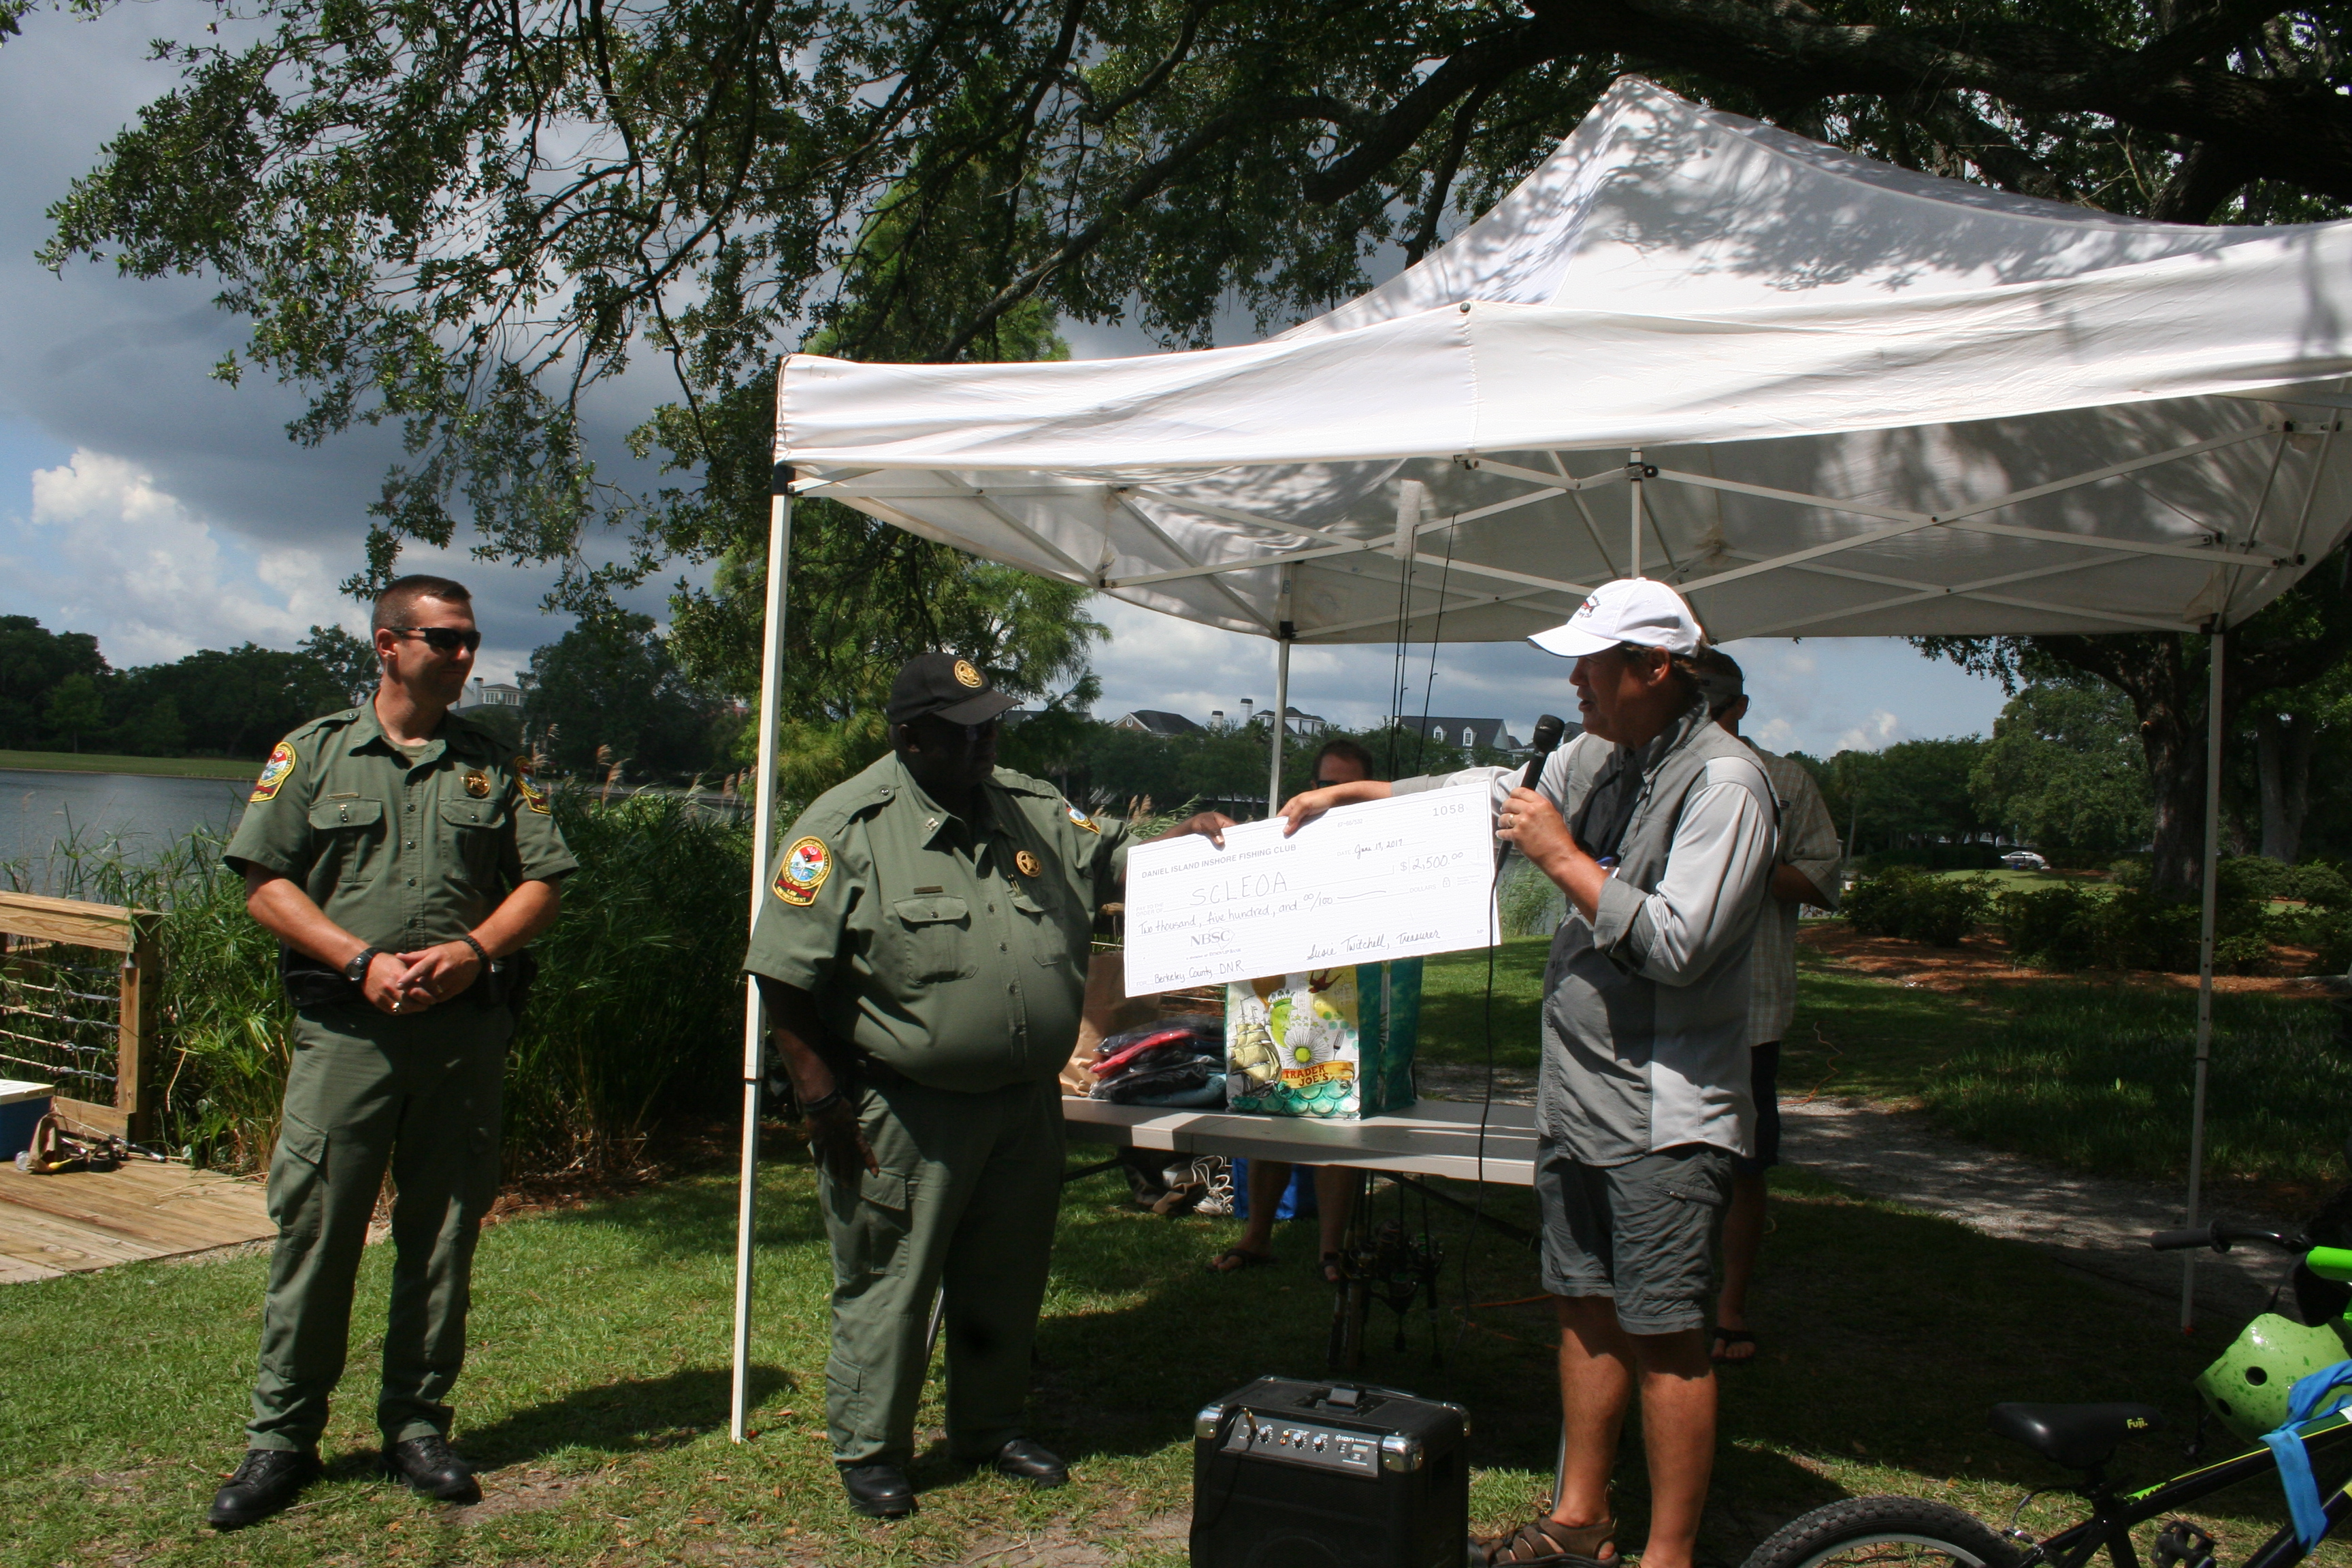 The Department of Natural Resources (Berkeley County) was the beneficiary of $2500 from proceeds raised by the fishing tournament.